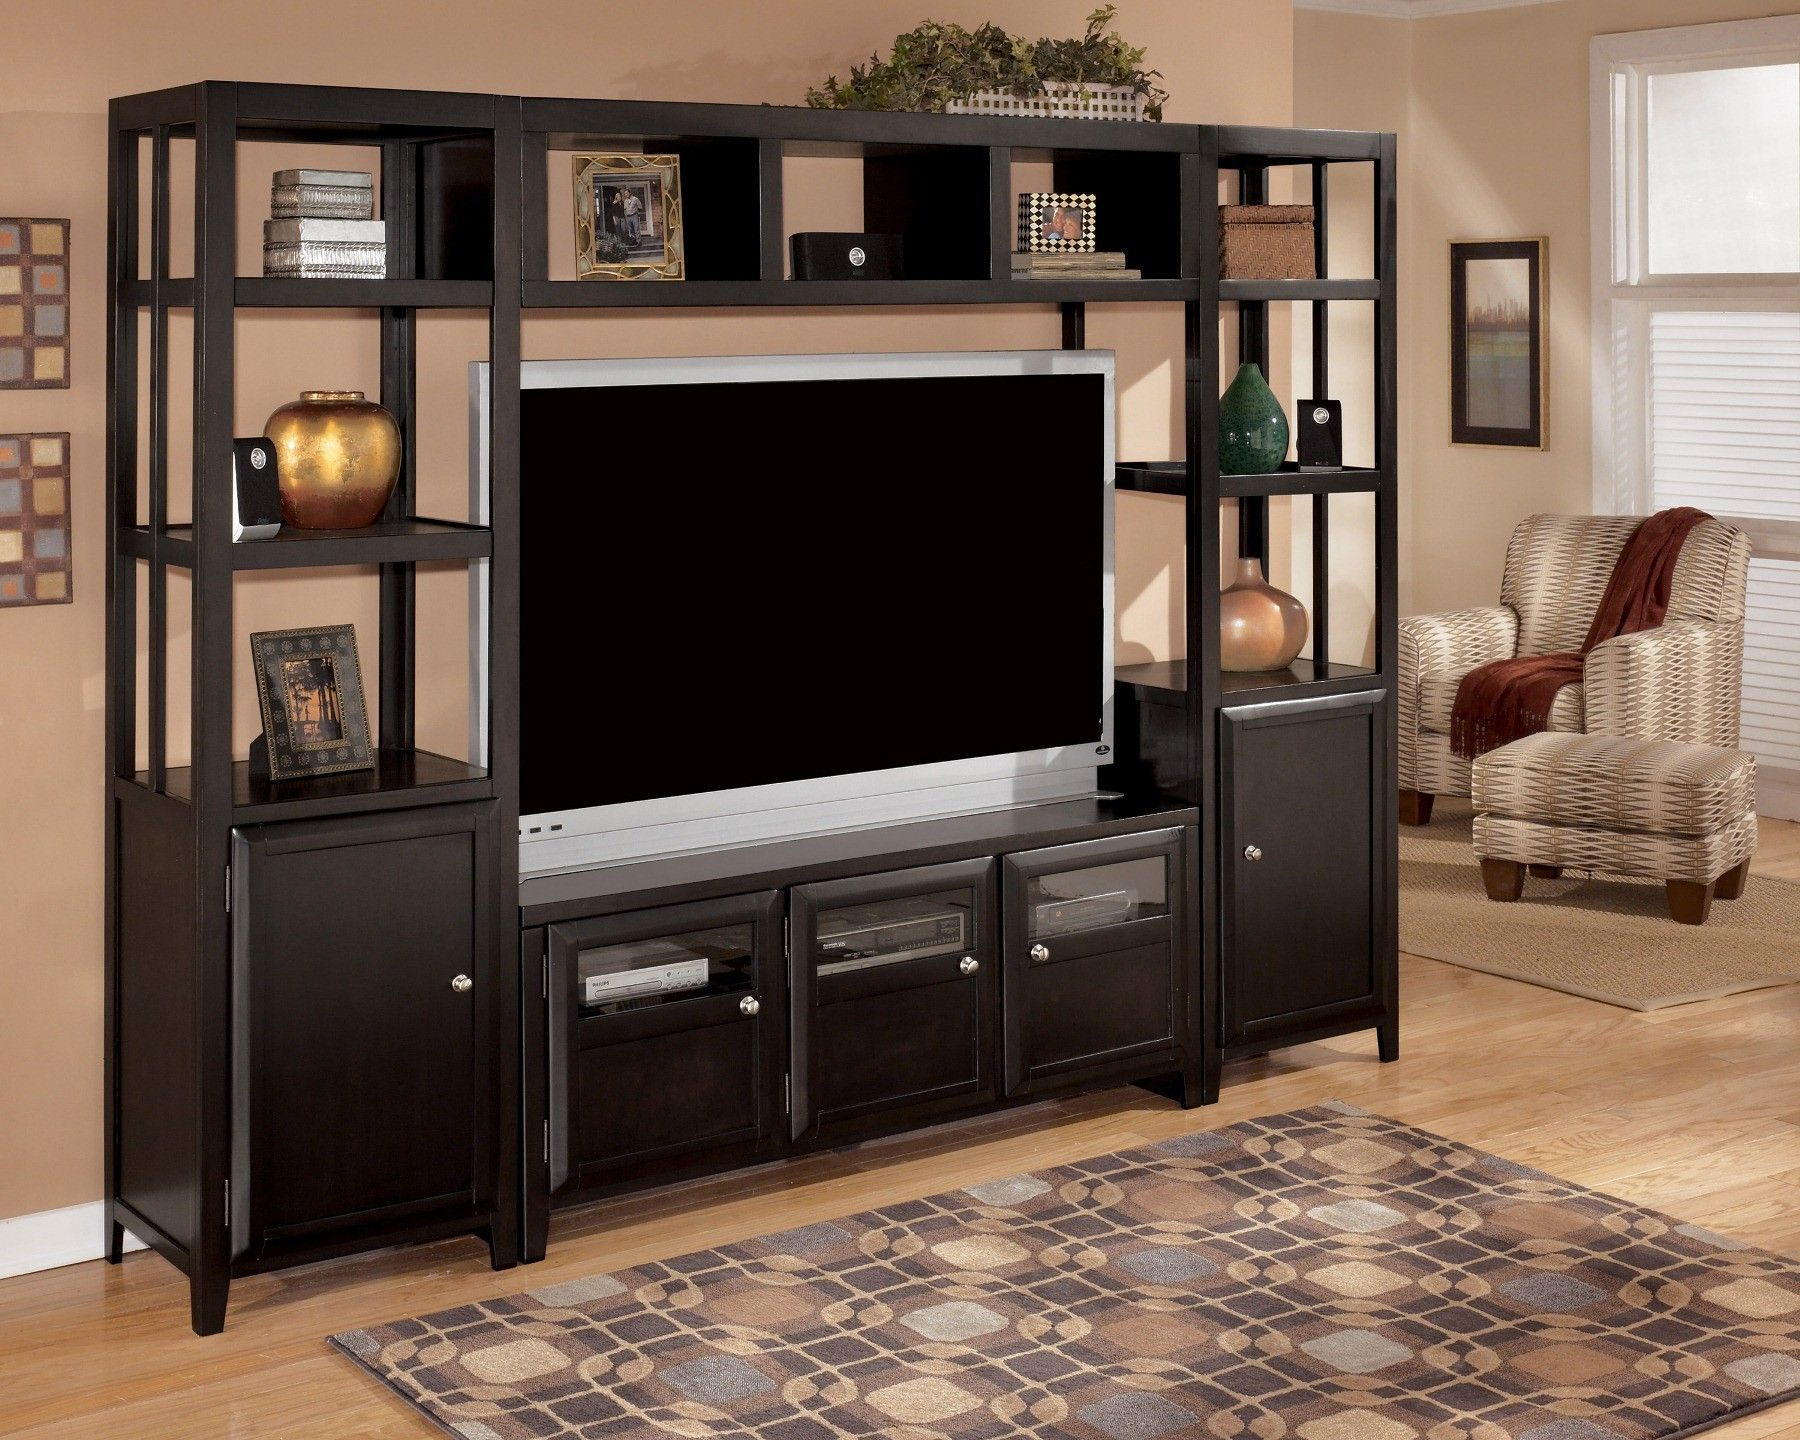 Corner Showcase Designs For Living Room Impressive Naomi Entertainment Wall Unit …  Pinteres… Inspiration Design